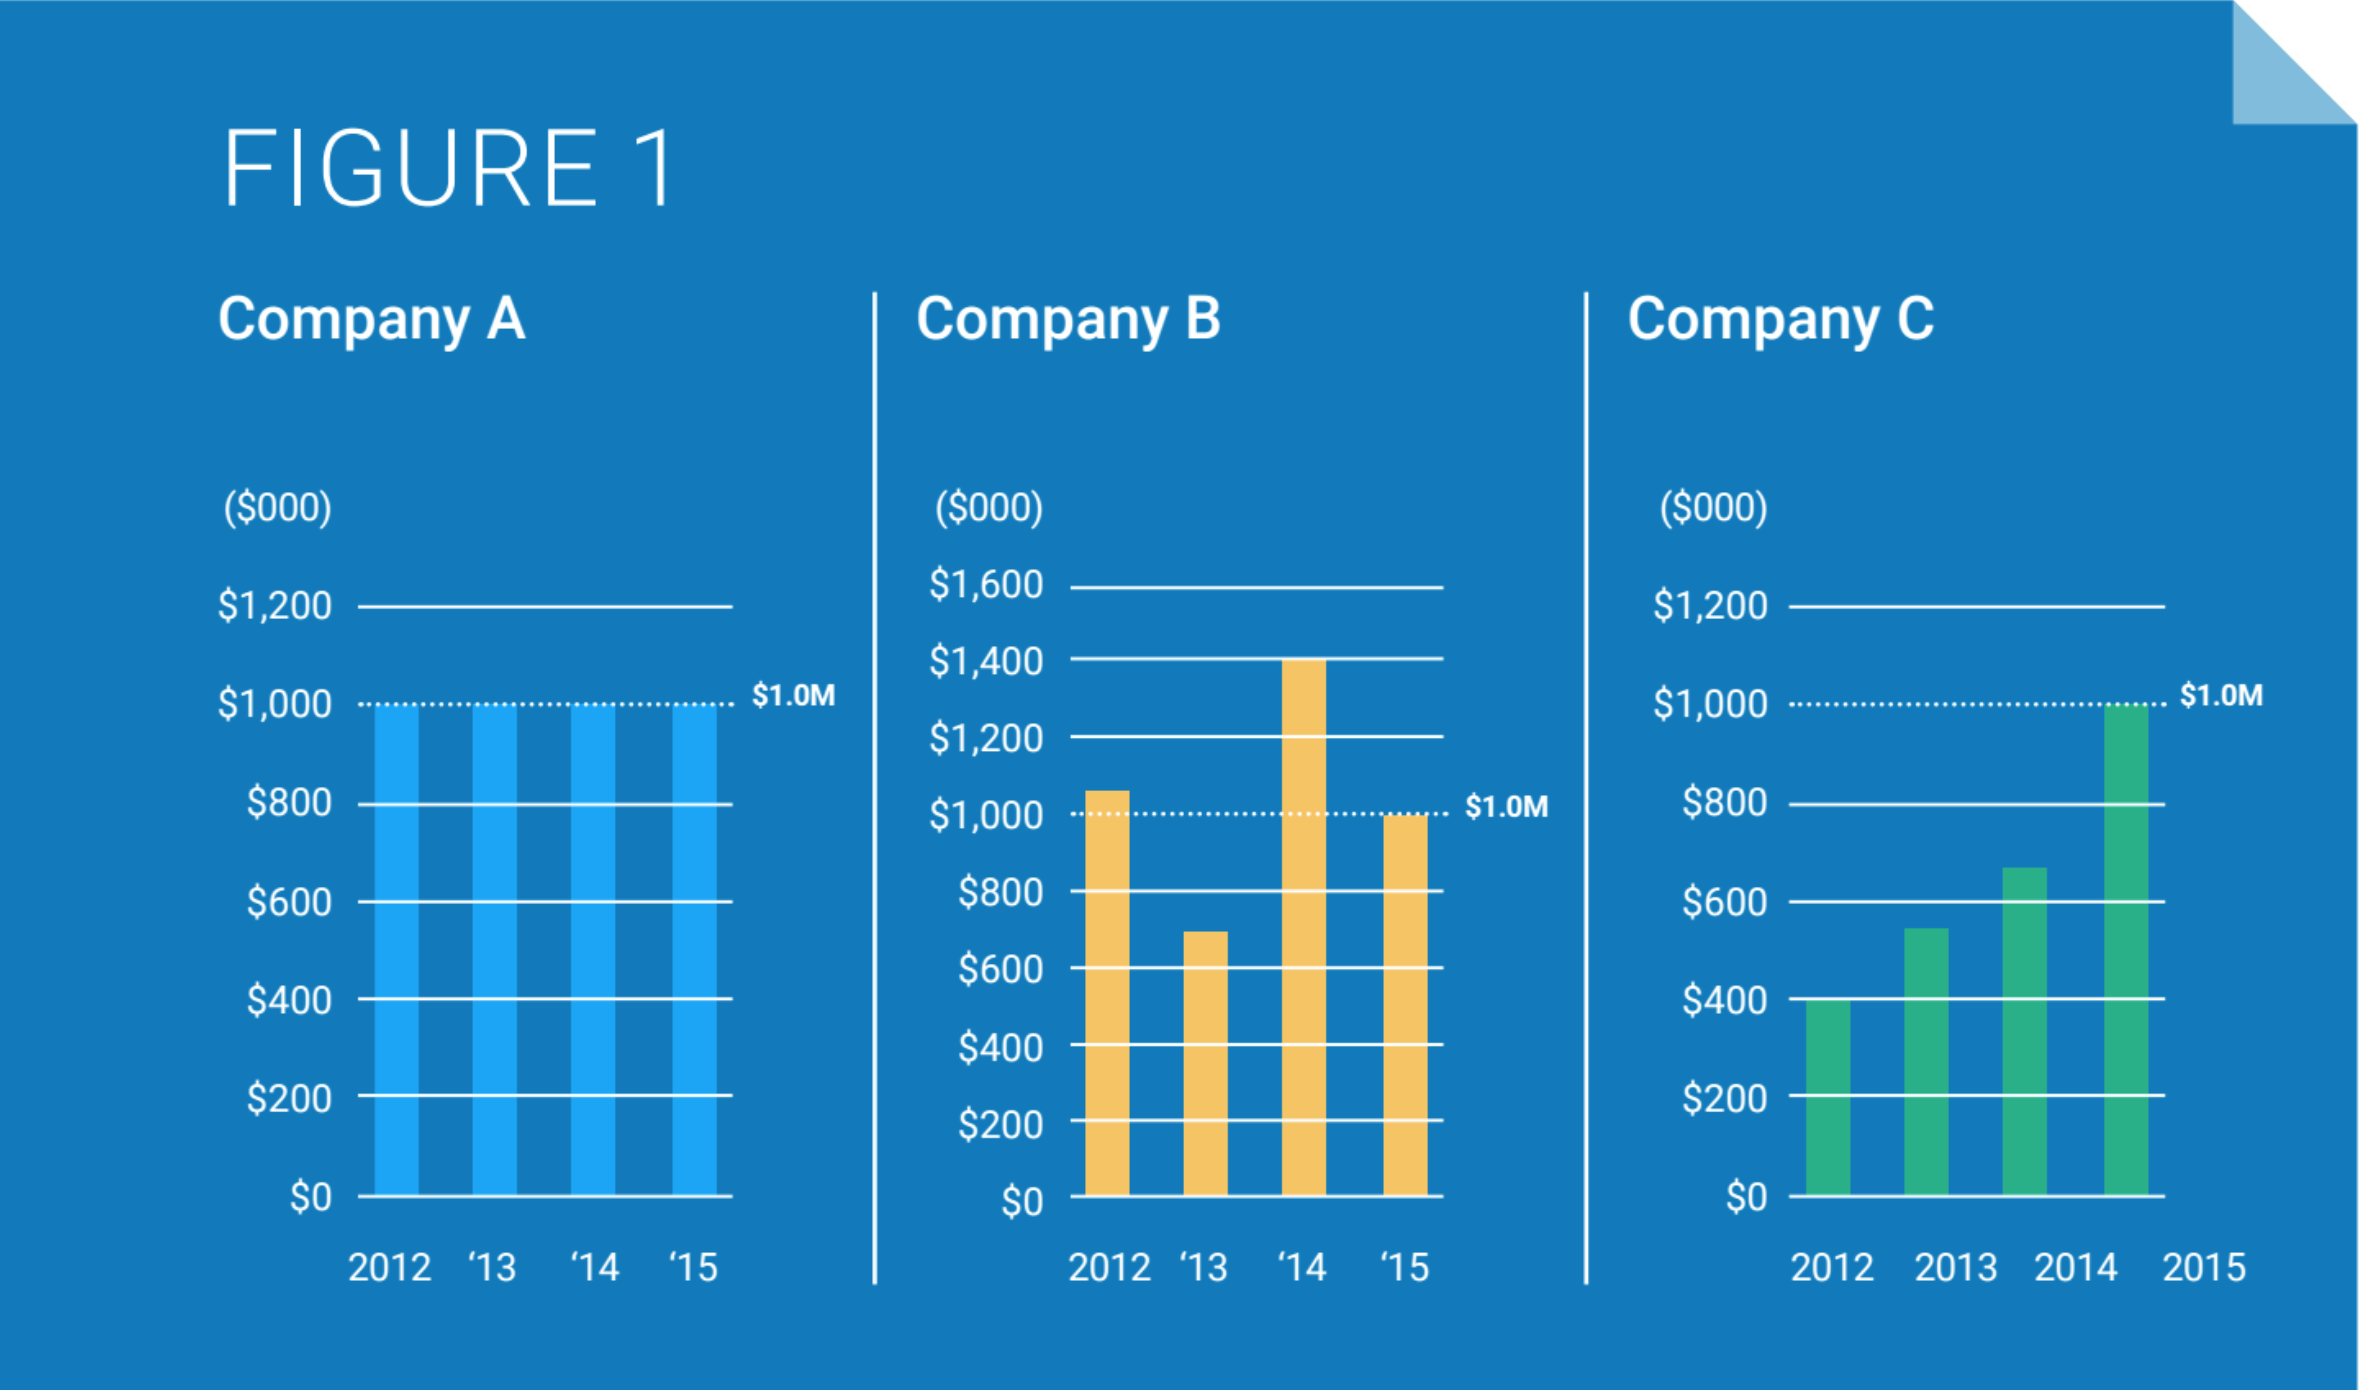 three graphs side by side comparing the performance of Company A, Company B and Company C